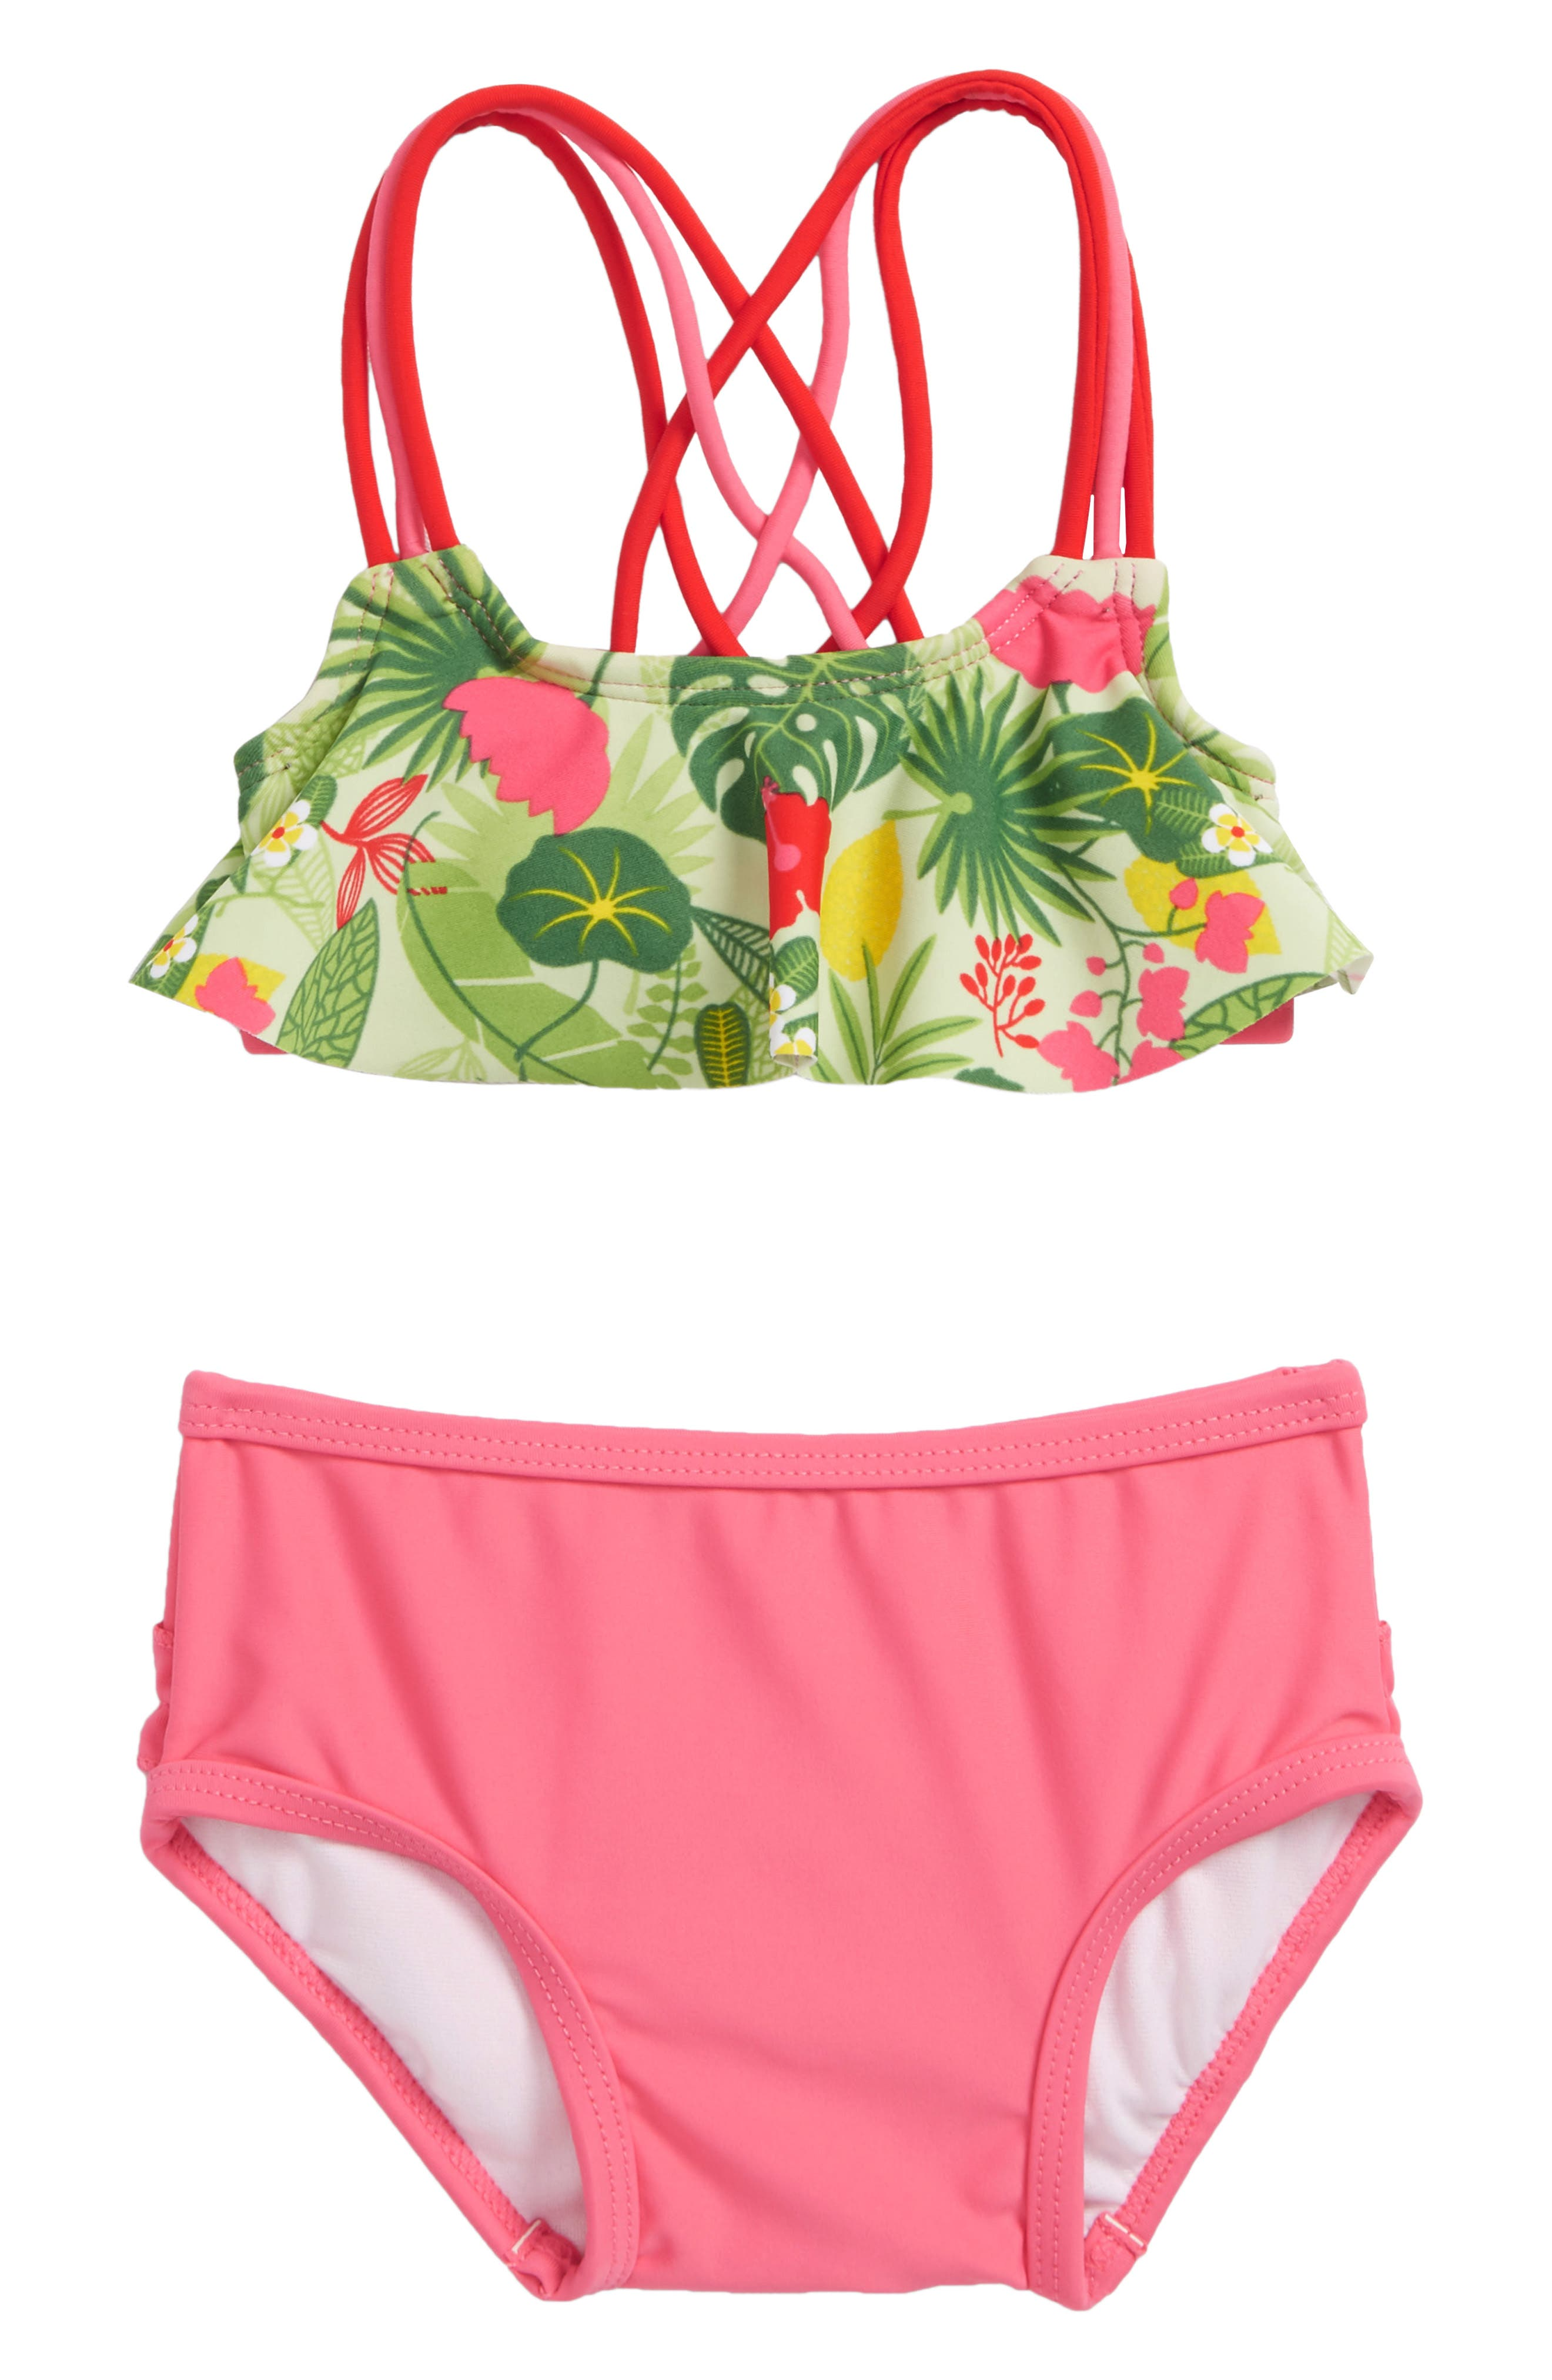 Puerto Vallarta Flounce Two-Piece Swimsuit,                             Main thumbnail 1, color,                             651